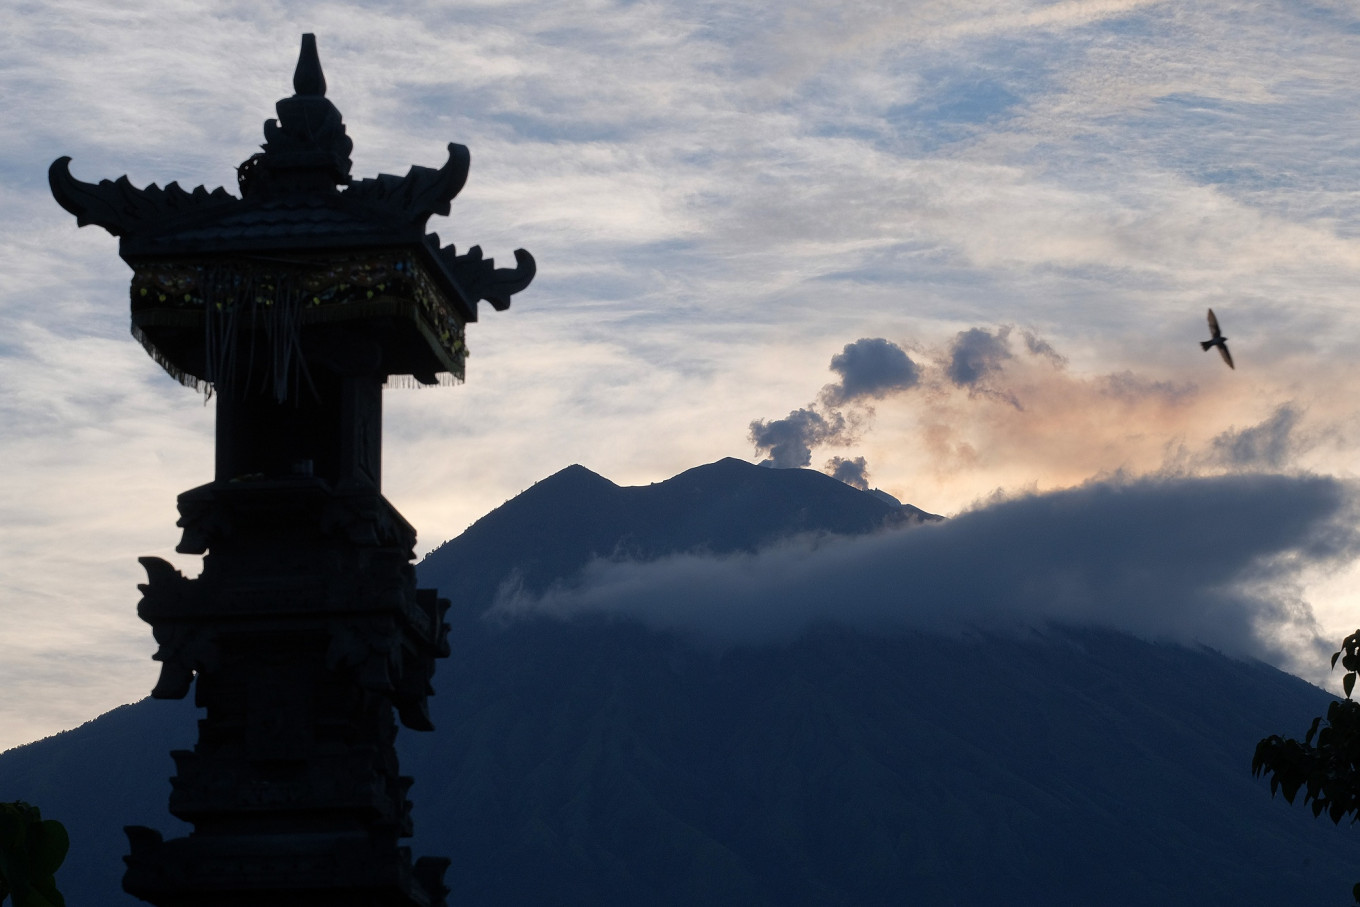 Bali hit by volcanic ash after Mount Agung erupts